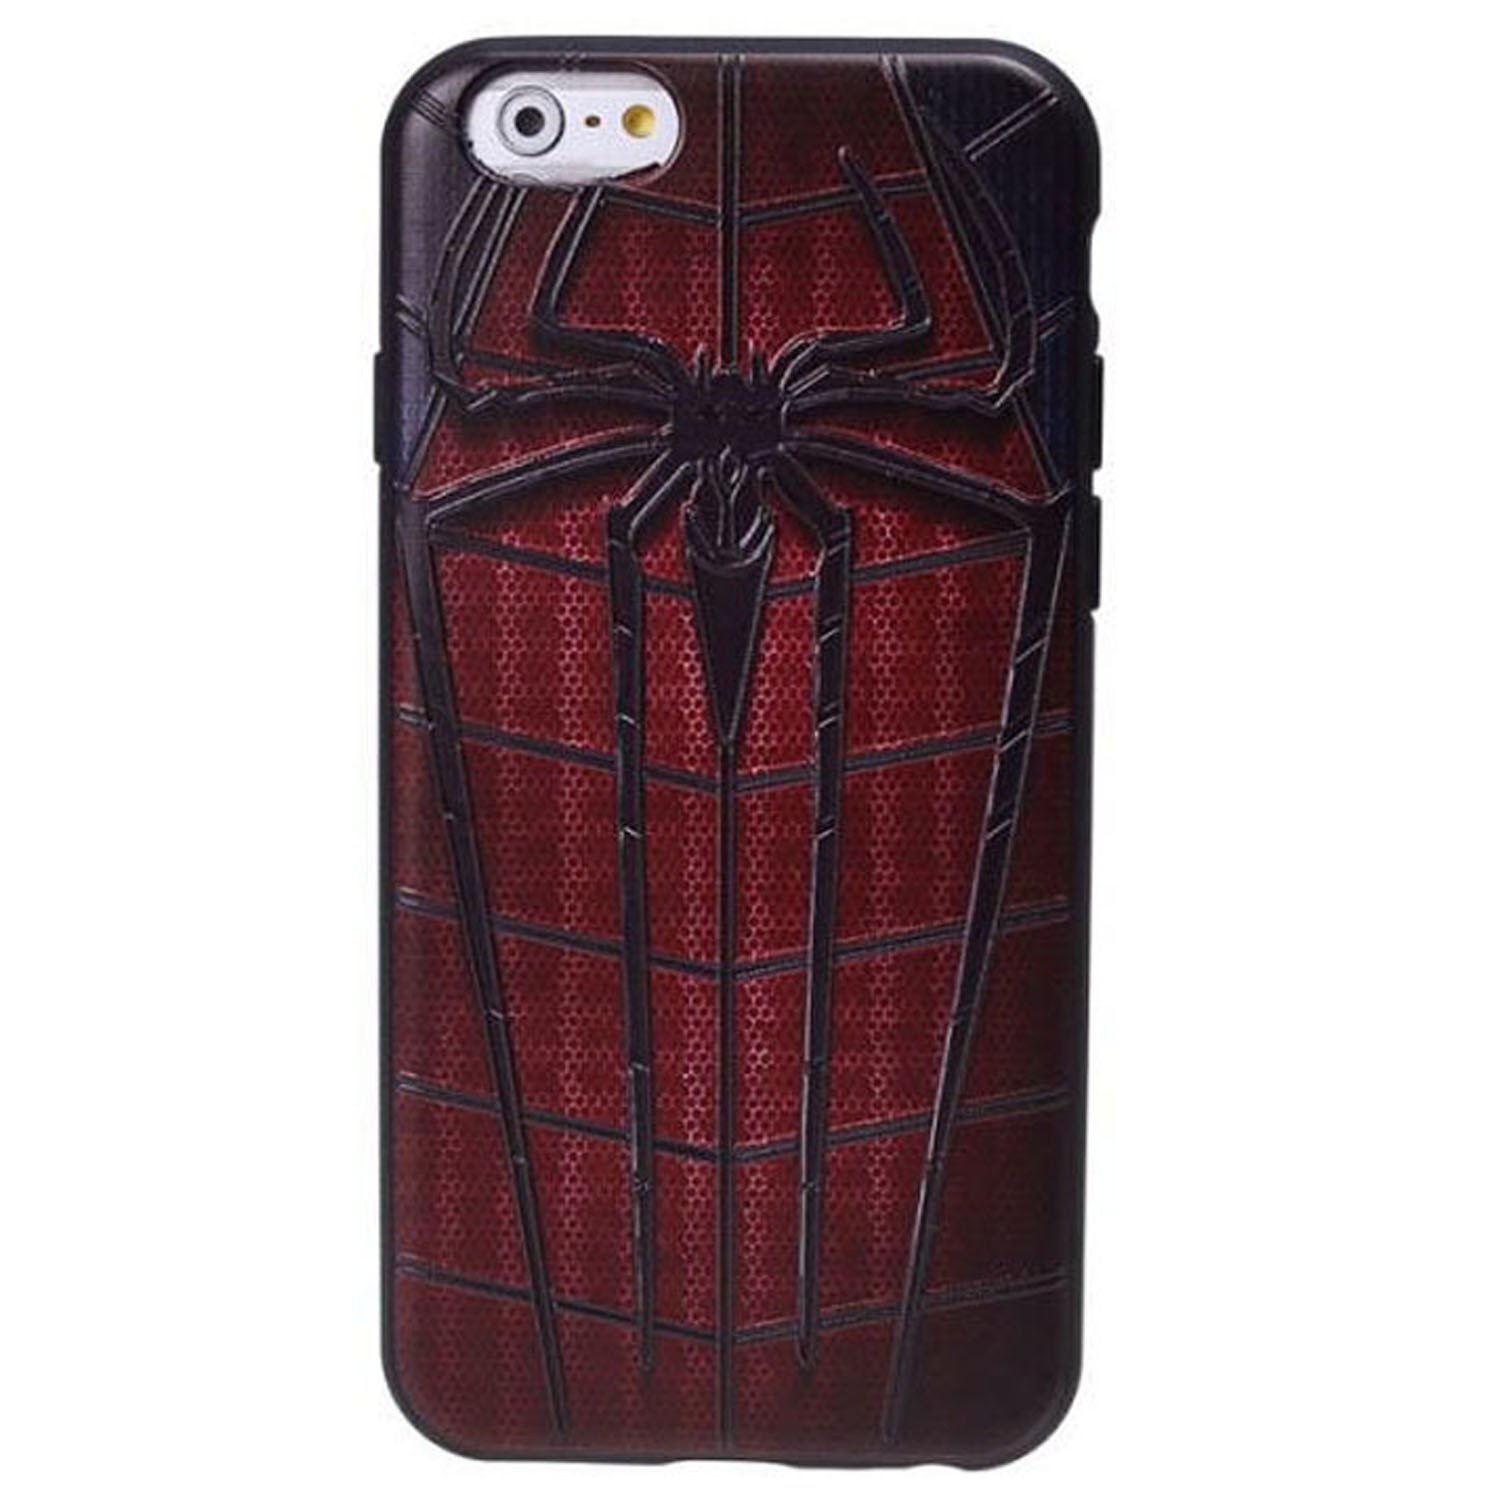 Kritzel Superheroes Collection Case für iPhone 6 / 6s - #11